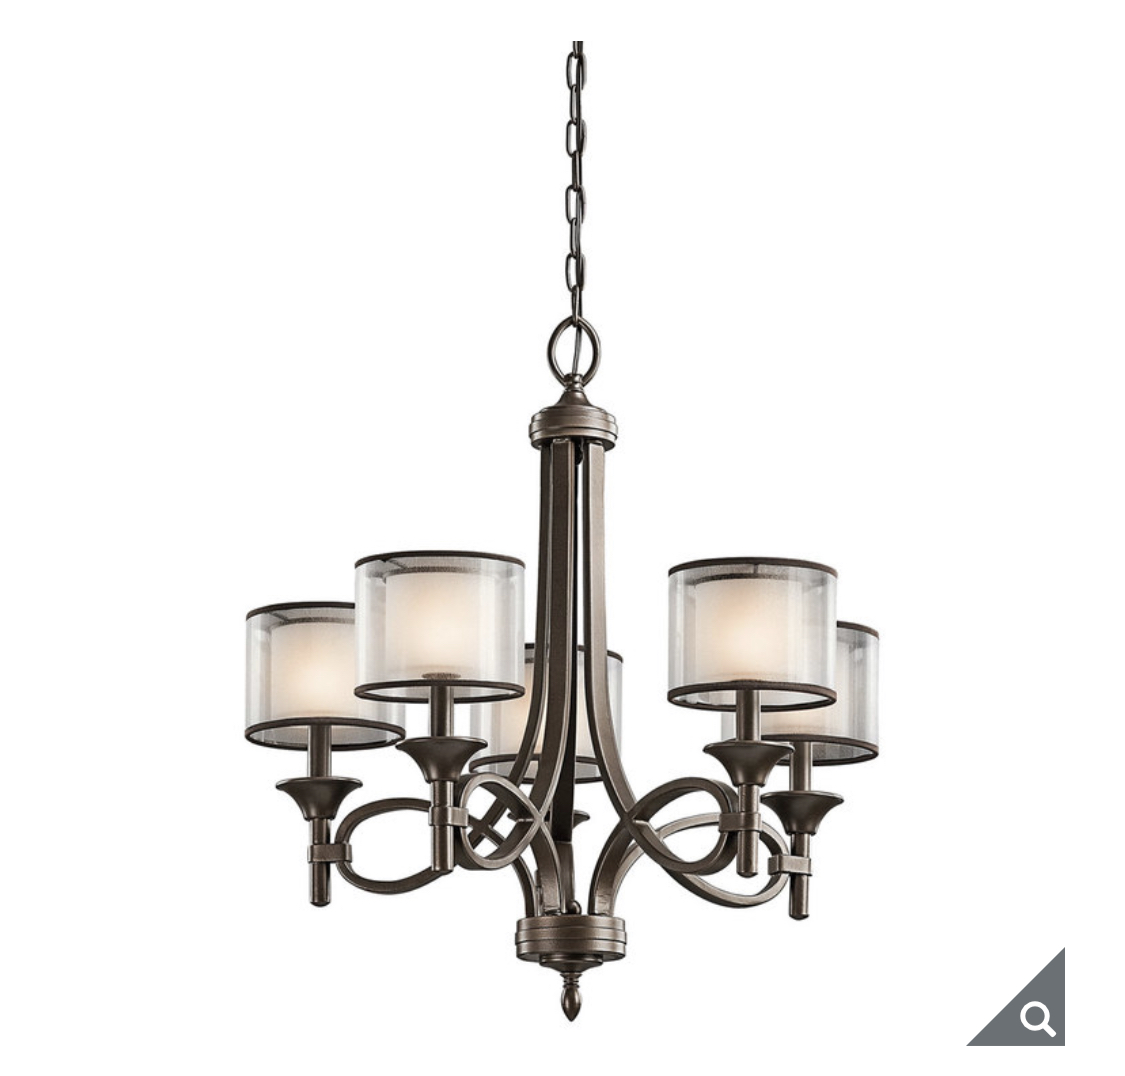 Kichler Lacey Five Light Chandelier Ceiling Light in Mission Bronze